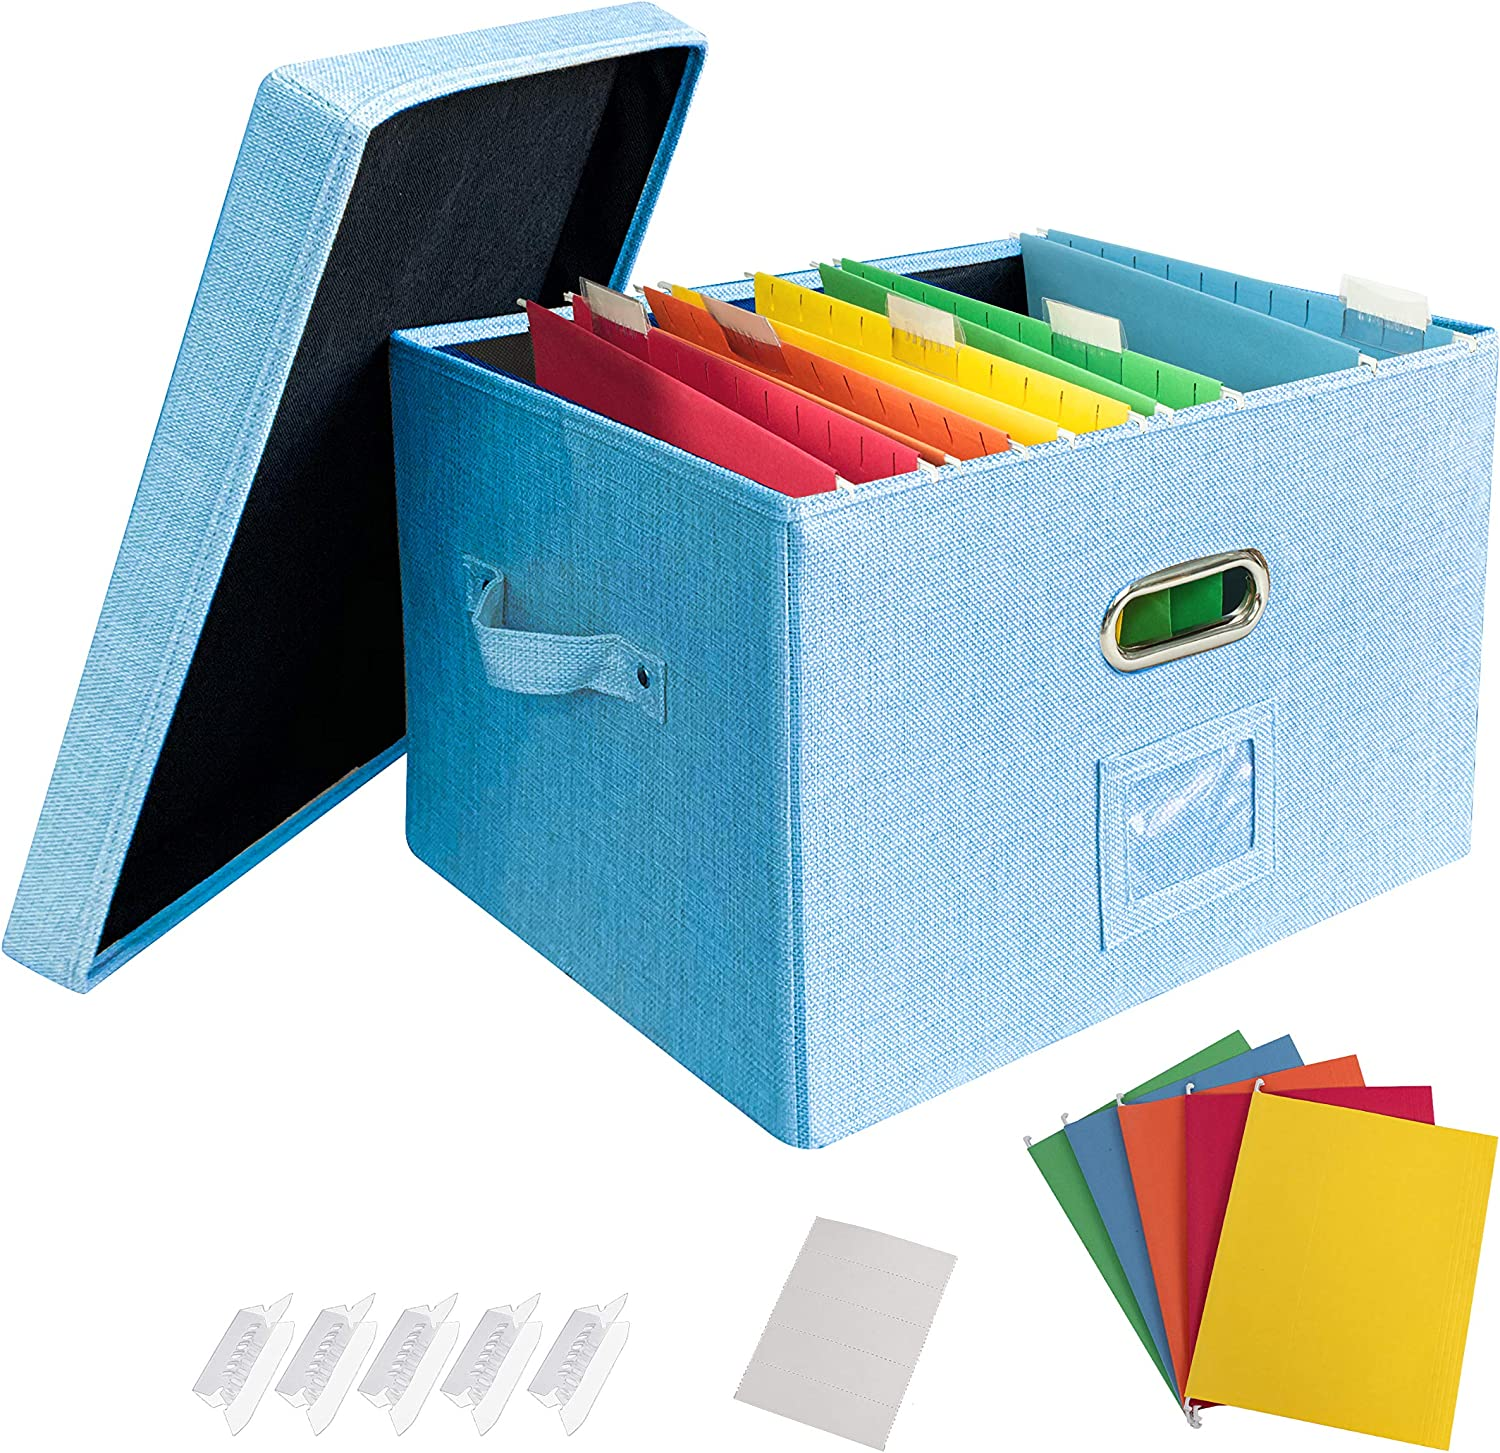 JSungo File Organizer Box Office Document Storage with Lid, Collapsible Linen Hanging Filing Organization, Home Portable Storage with Handle, Letter Size Legal Folder, Blue